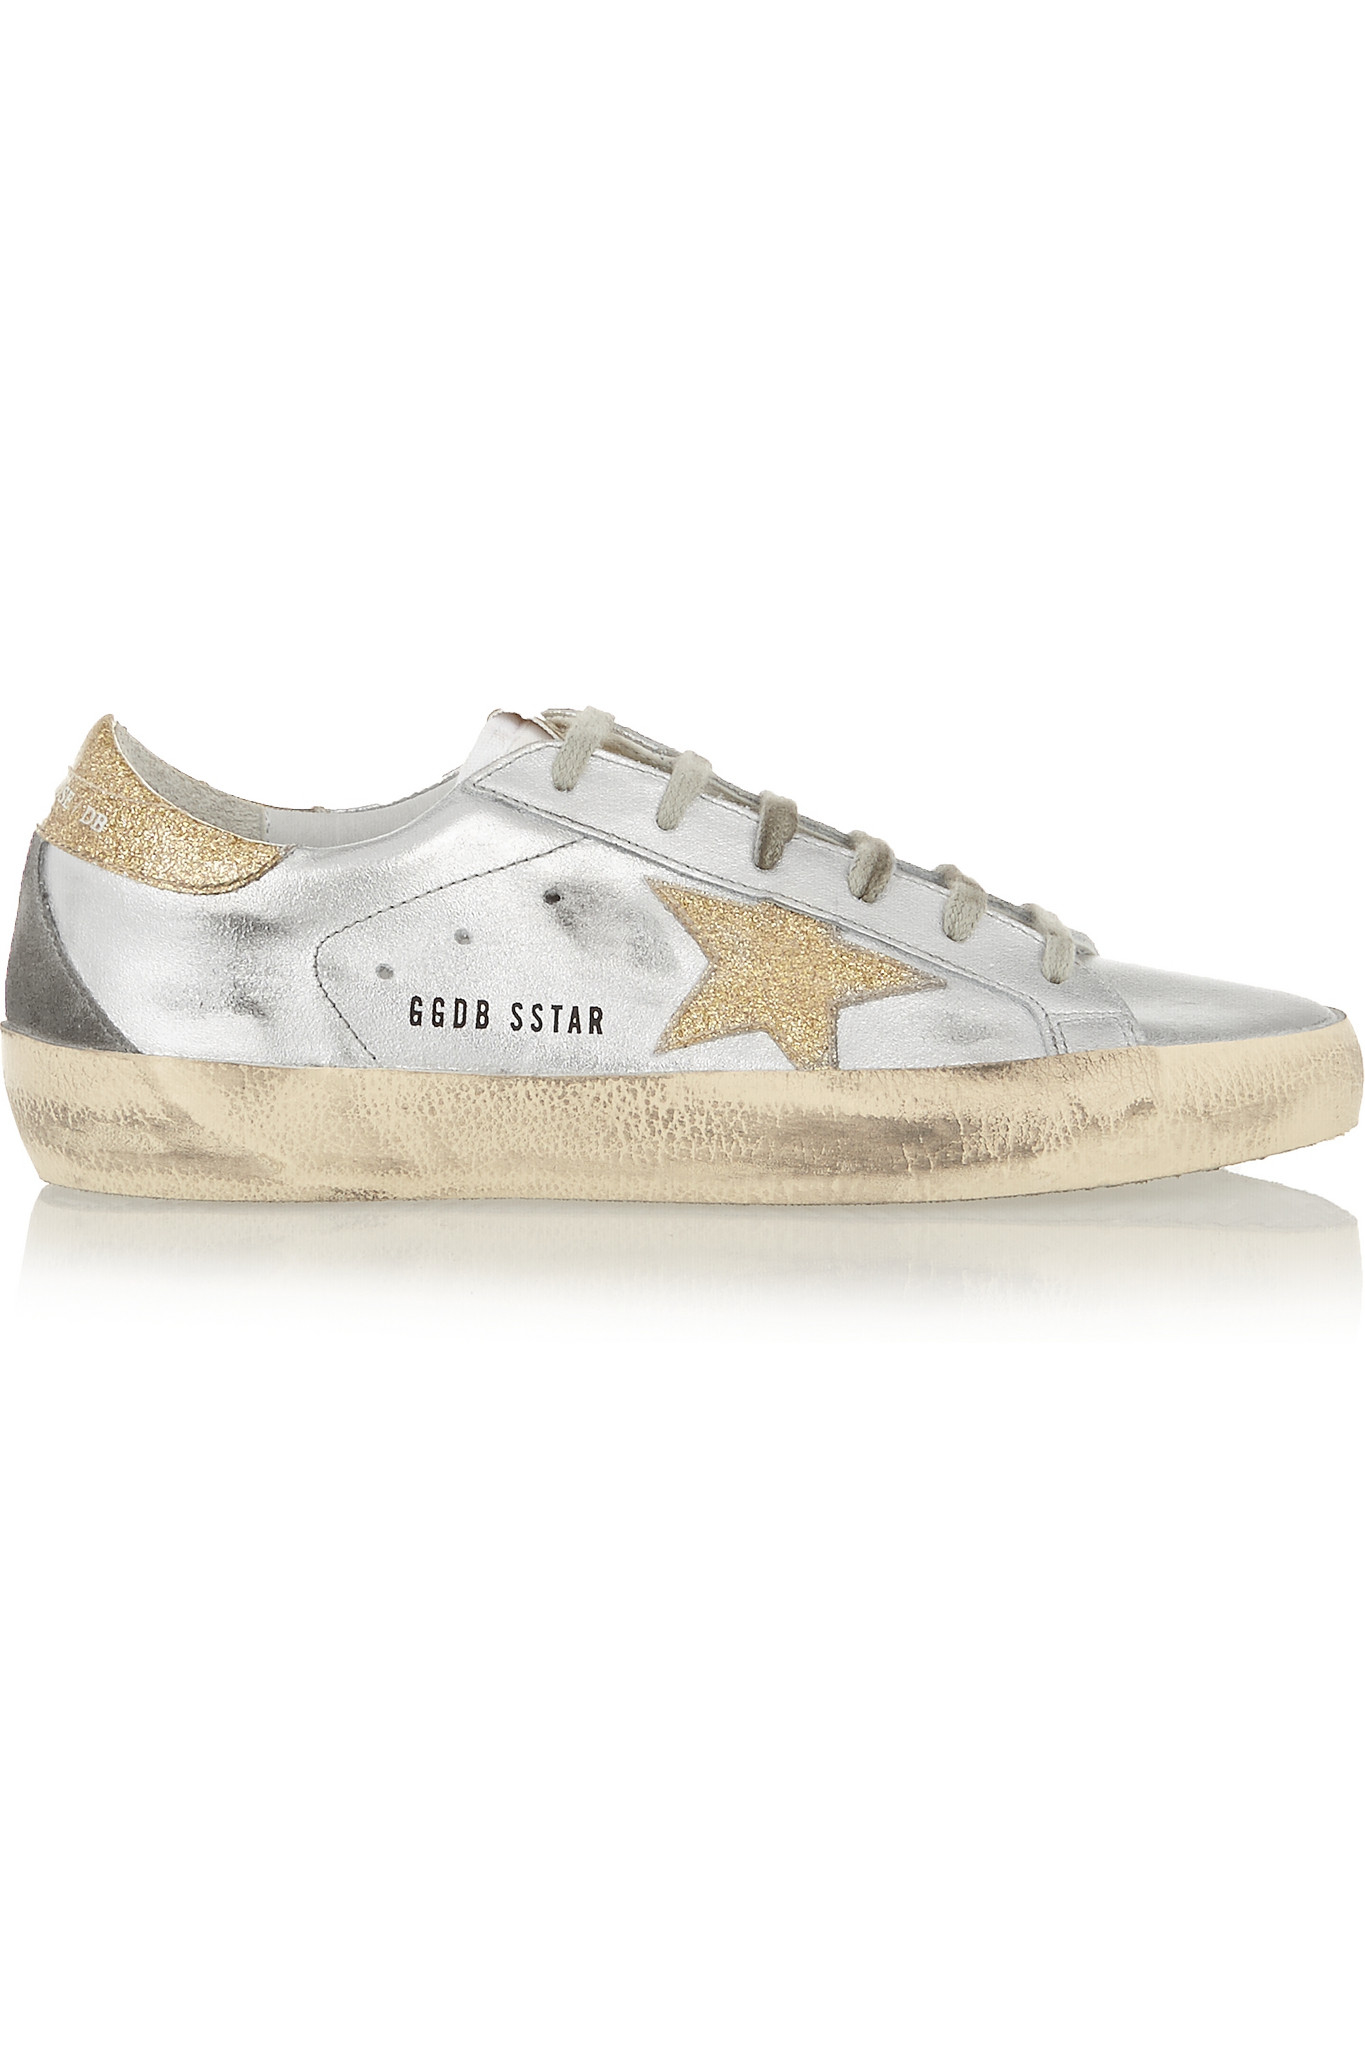 Superstar Glittered Distressed Leather Sneakers - Silver Golden Goose 1D8N7WsM